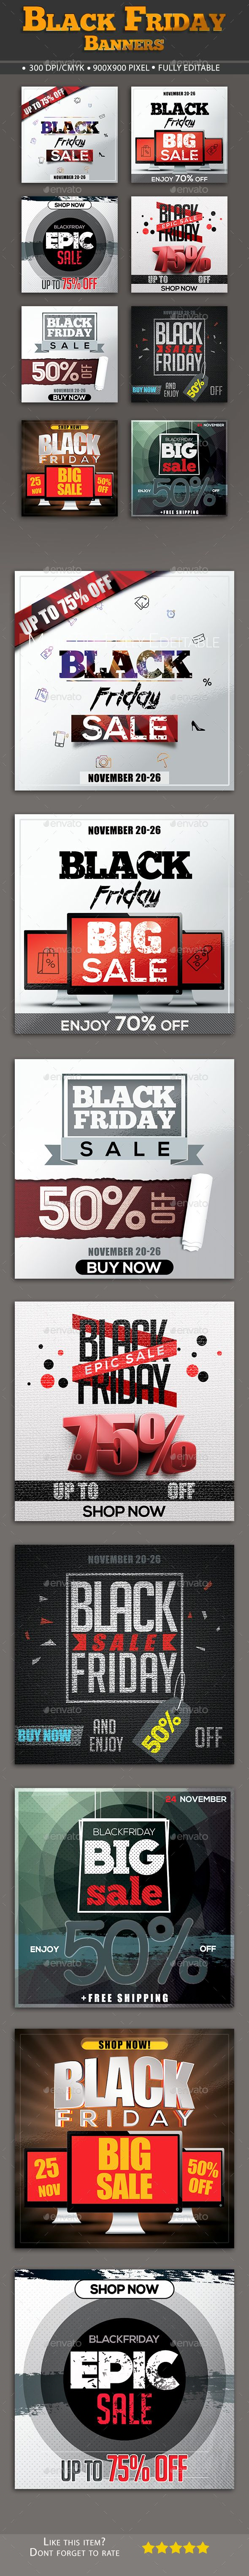 Black Friday Banners Templates PSD